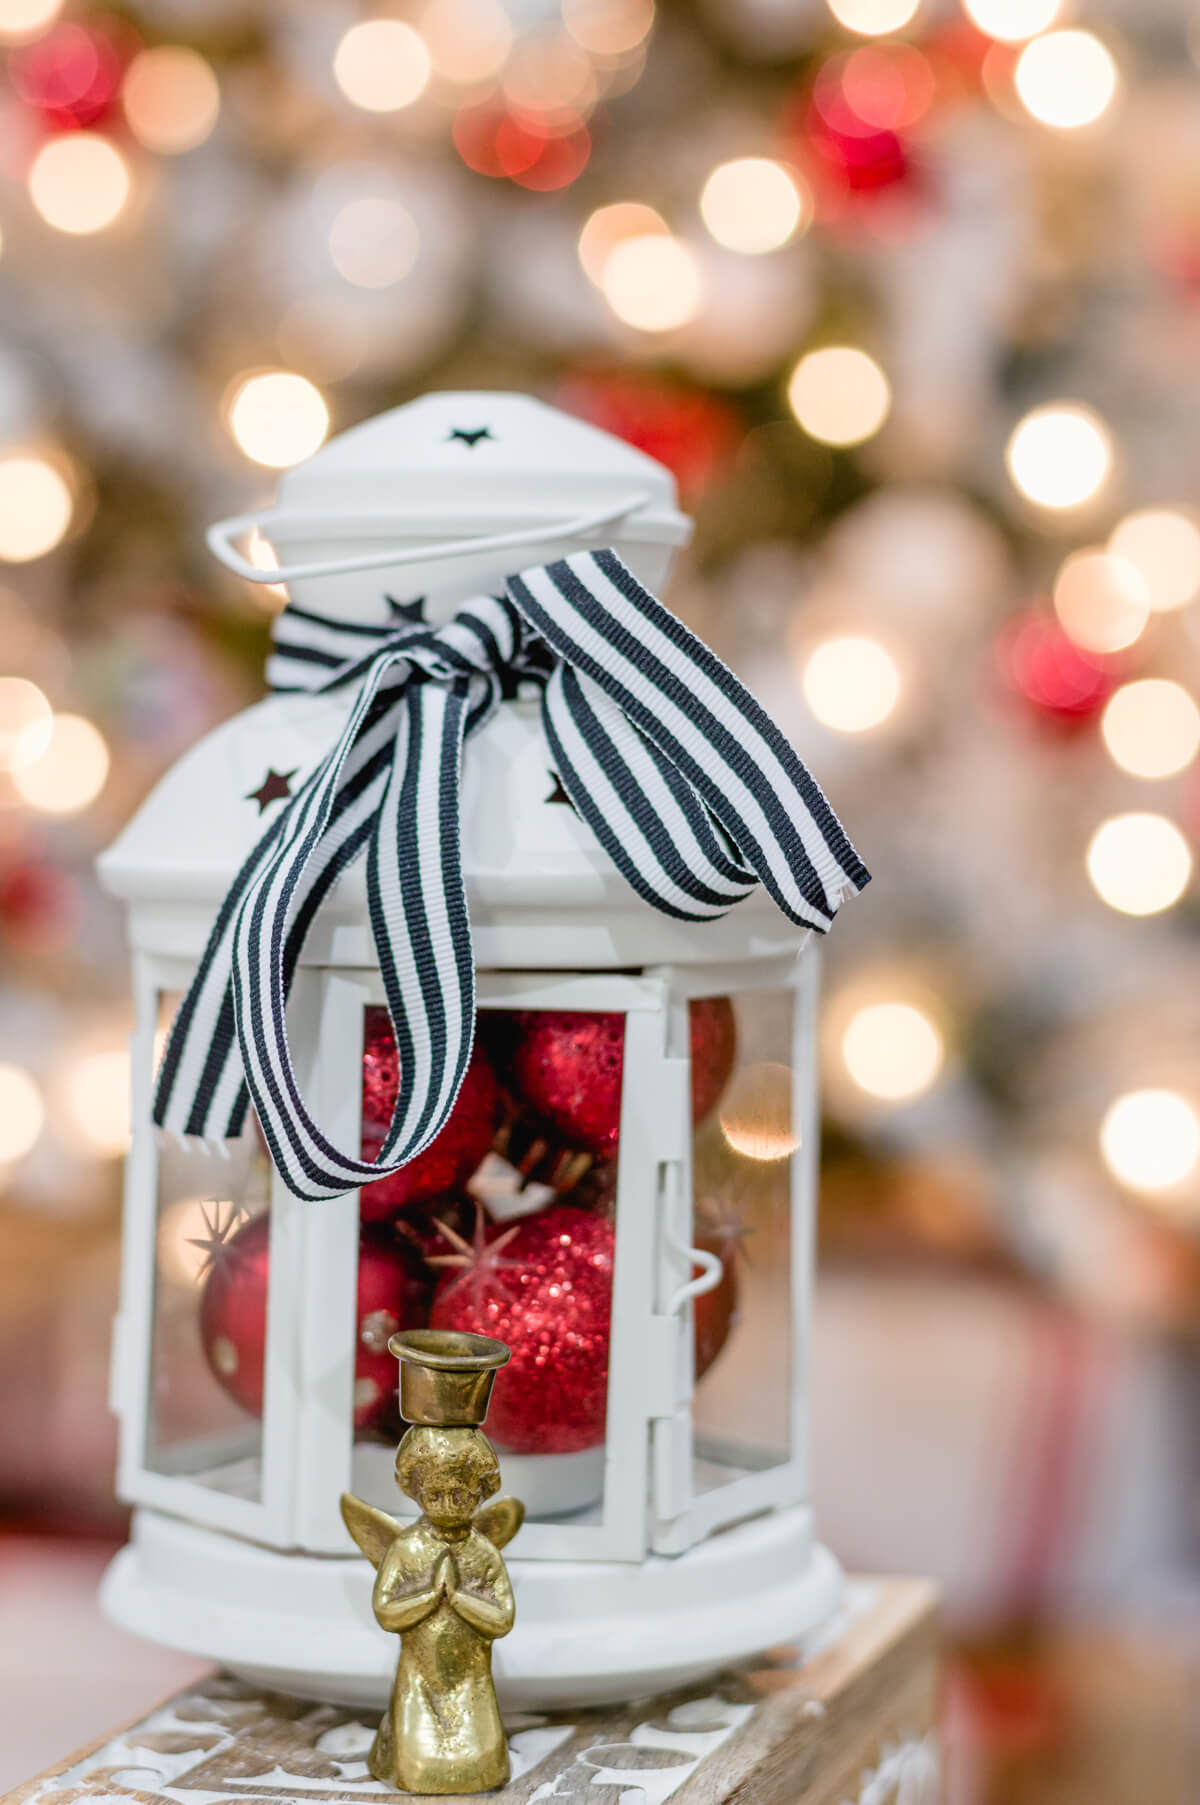 Easy Christmas Decorating Ideas with Christmas ornaments in a lantern | thehomeicreate.com